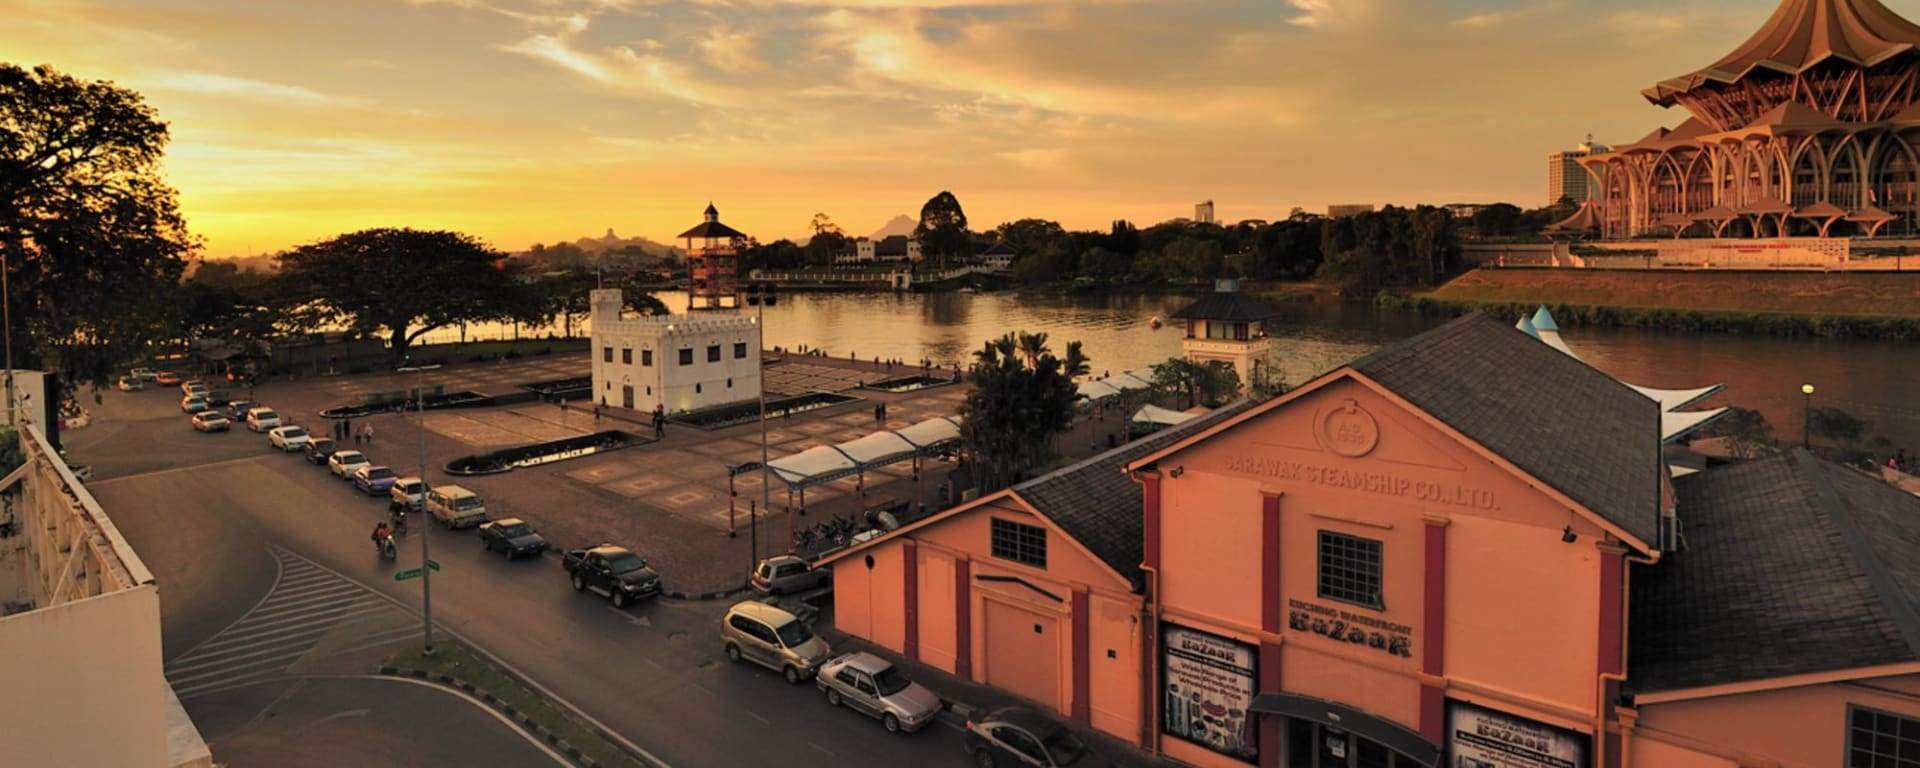 The Ranee Boutique Suites in Kuching: Riverfront